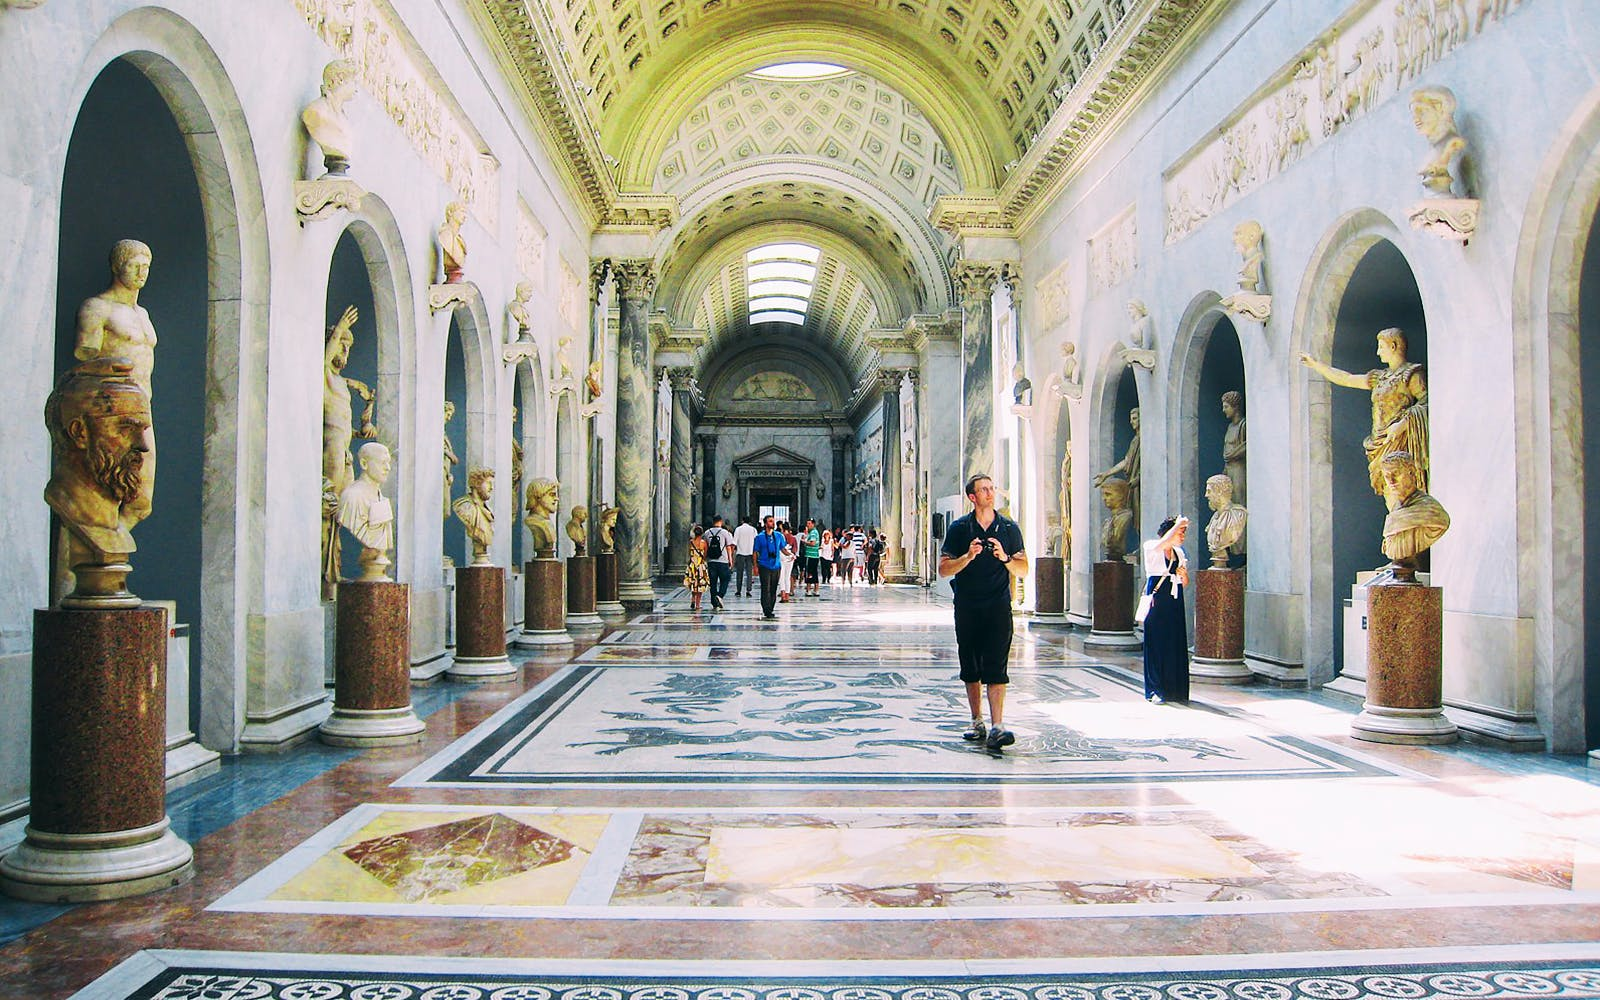 guided tour of vatican museums, sistine chapel & st. peter's basilica-3